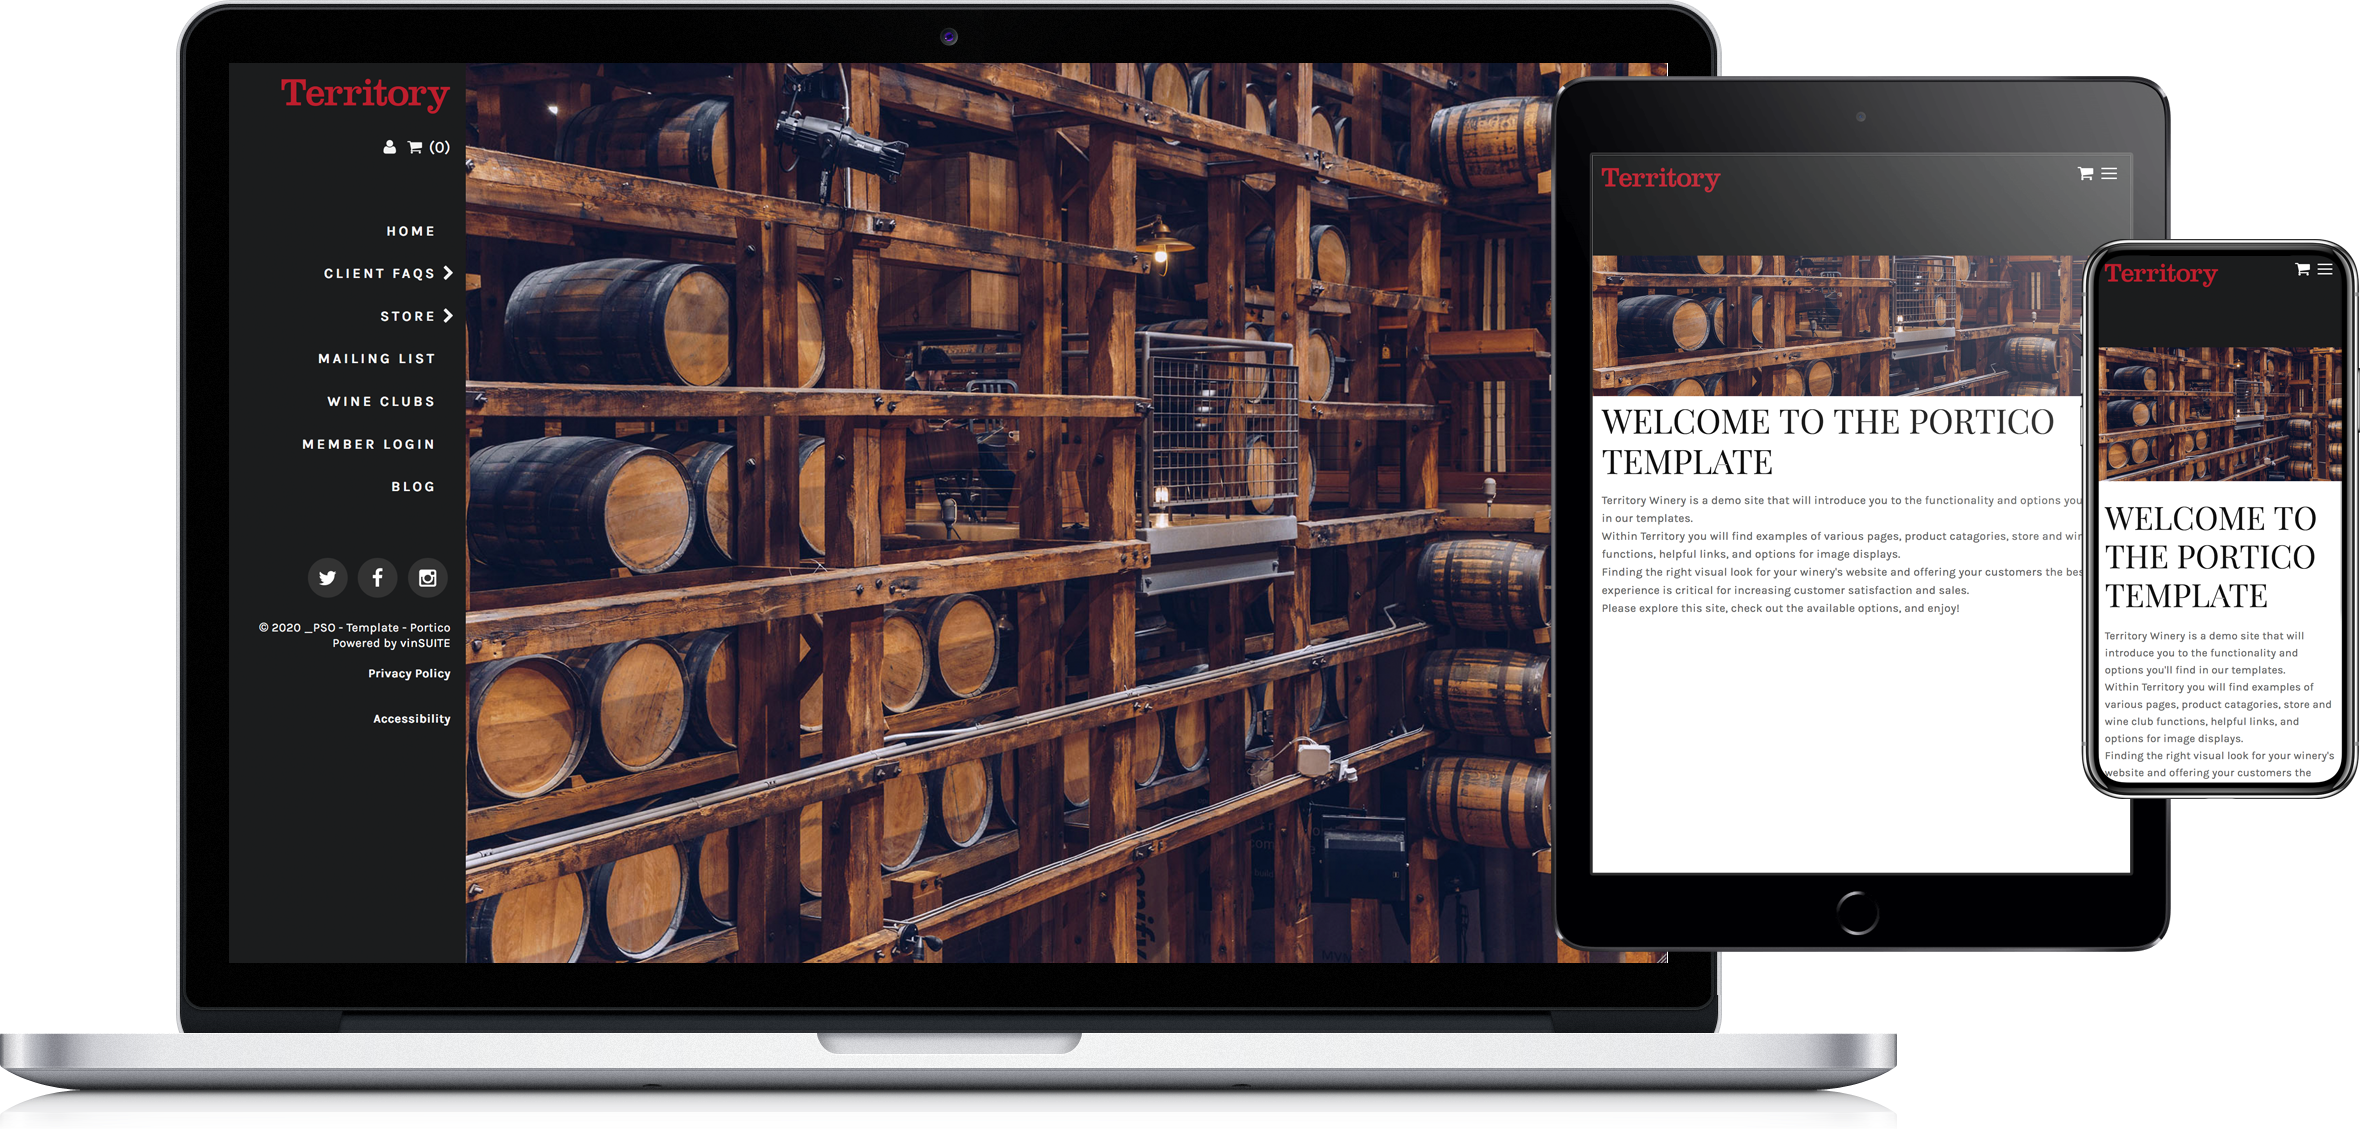 Portico website template on laptop, tablet and phone